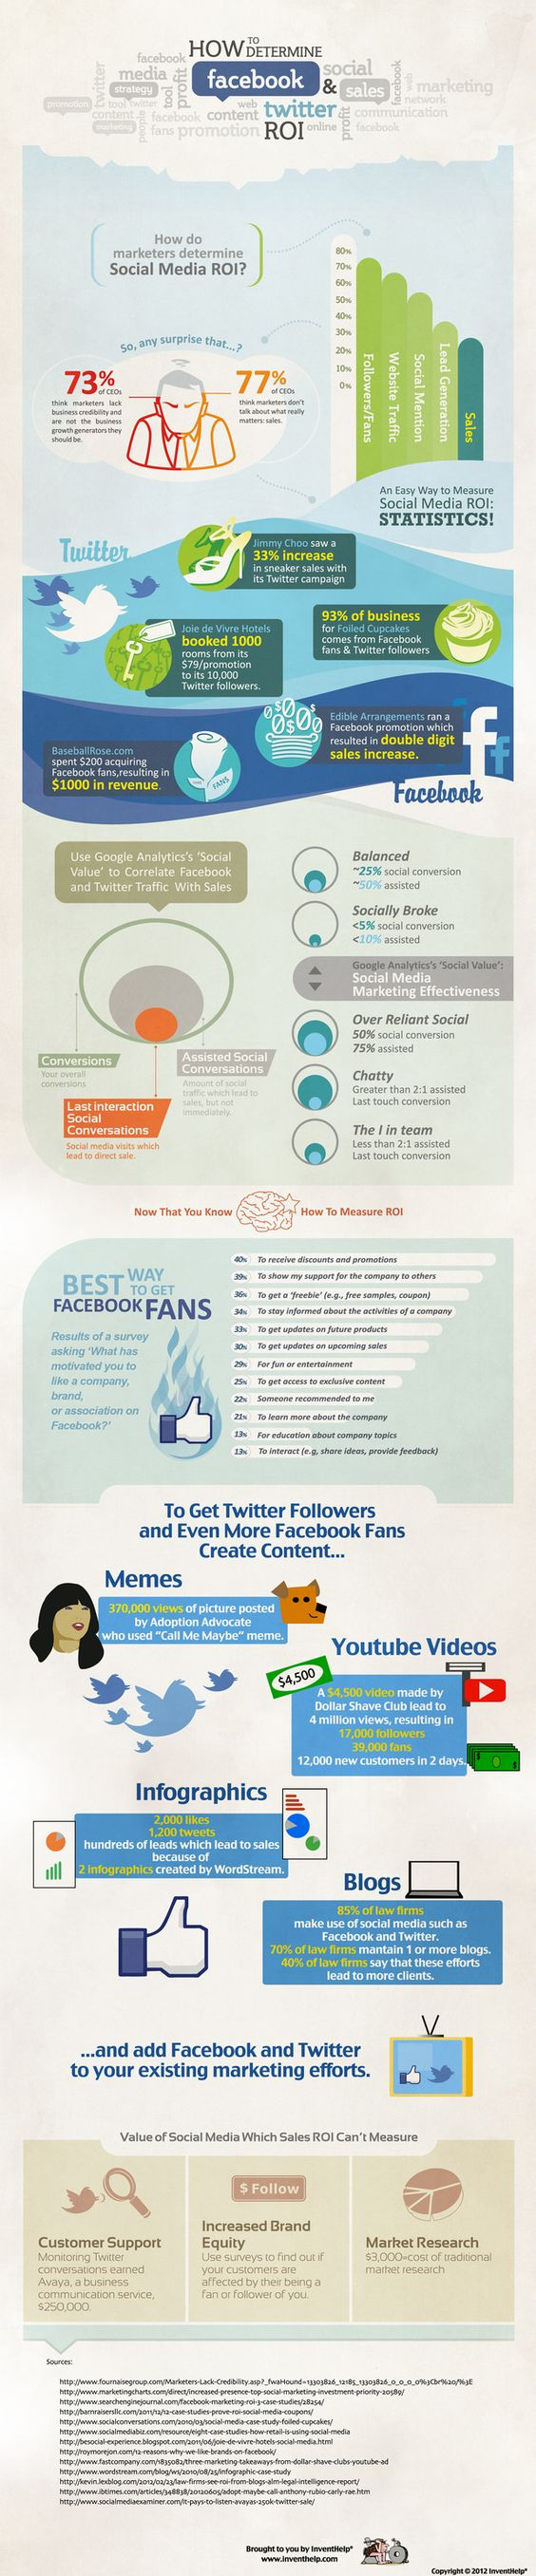 The ROI of Facebook and Twitter [infographic] via Econsultancy